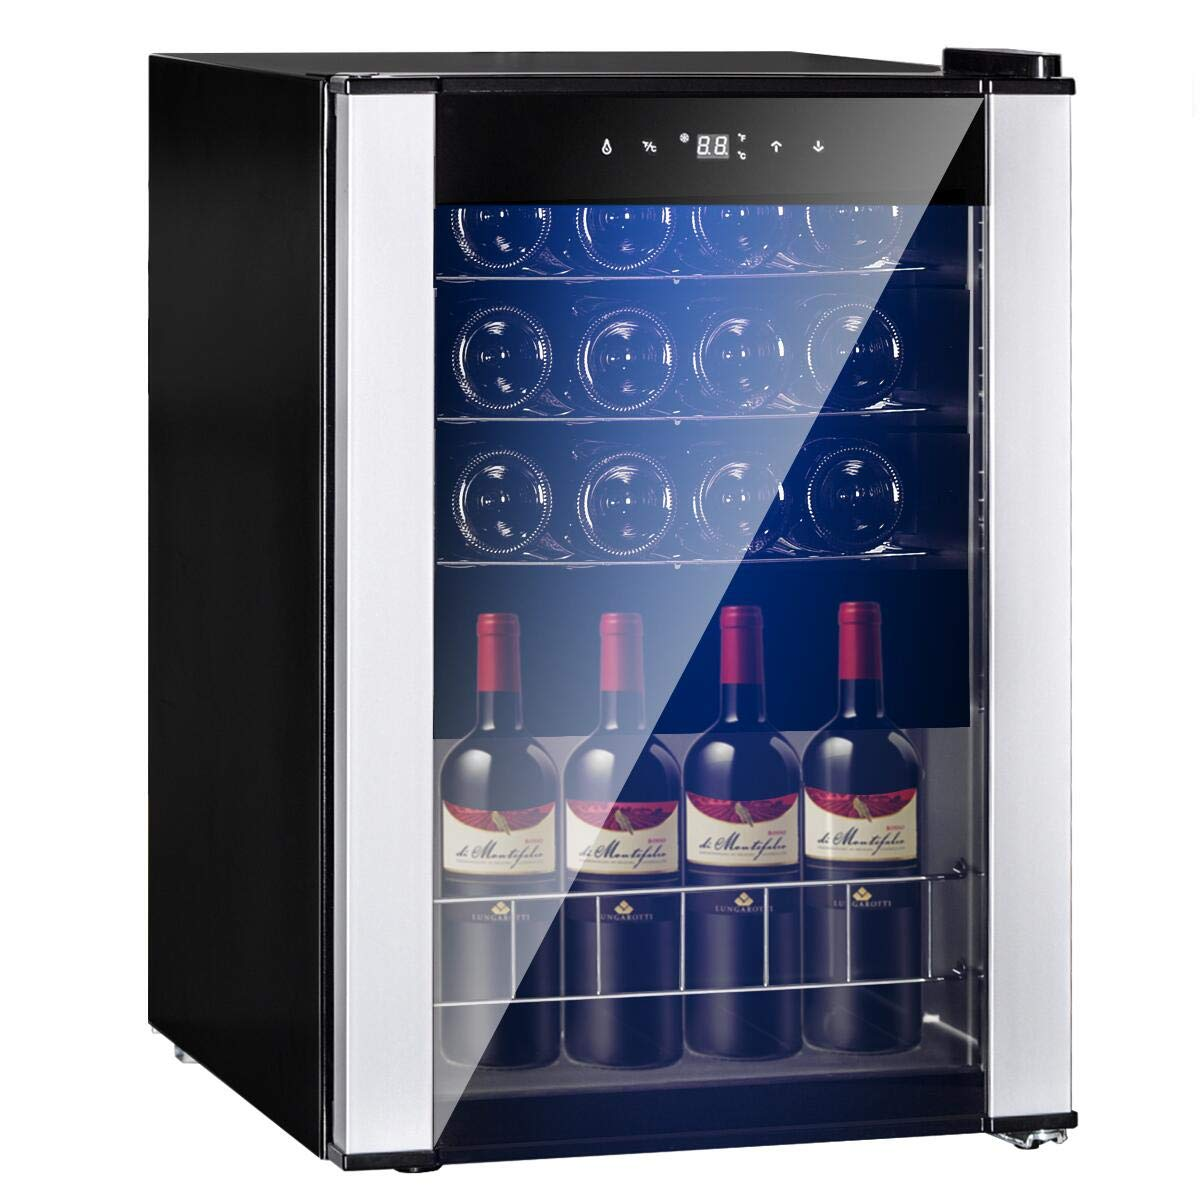 SMETA Refrigerator Champagne Operation Stainless